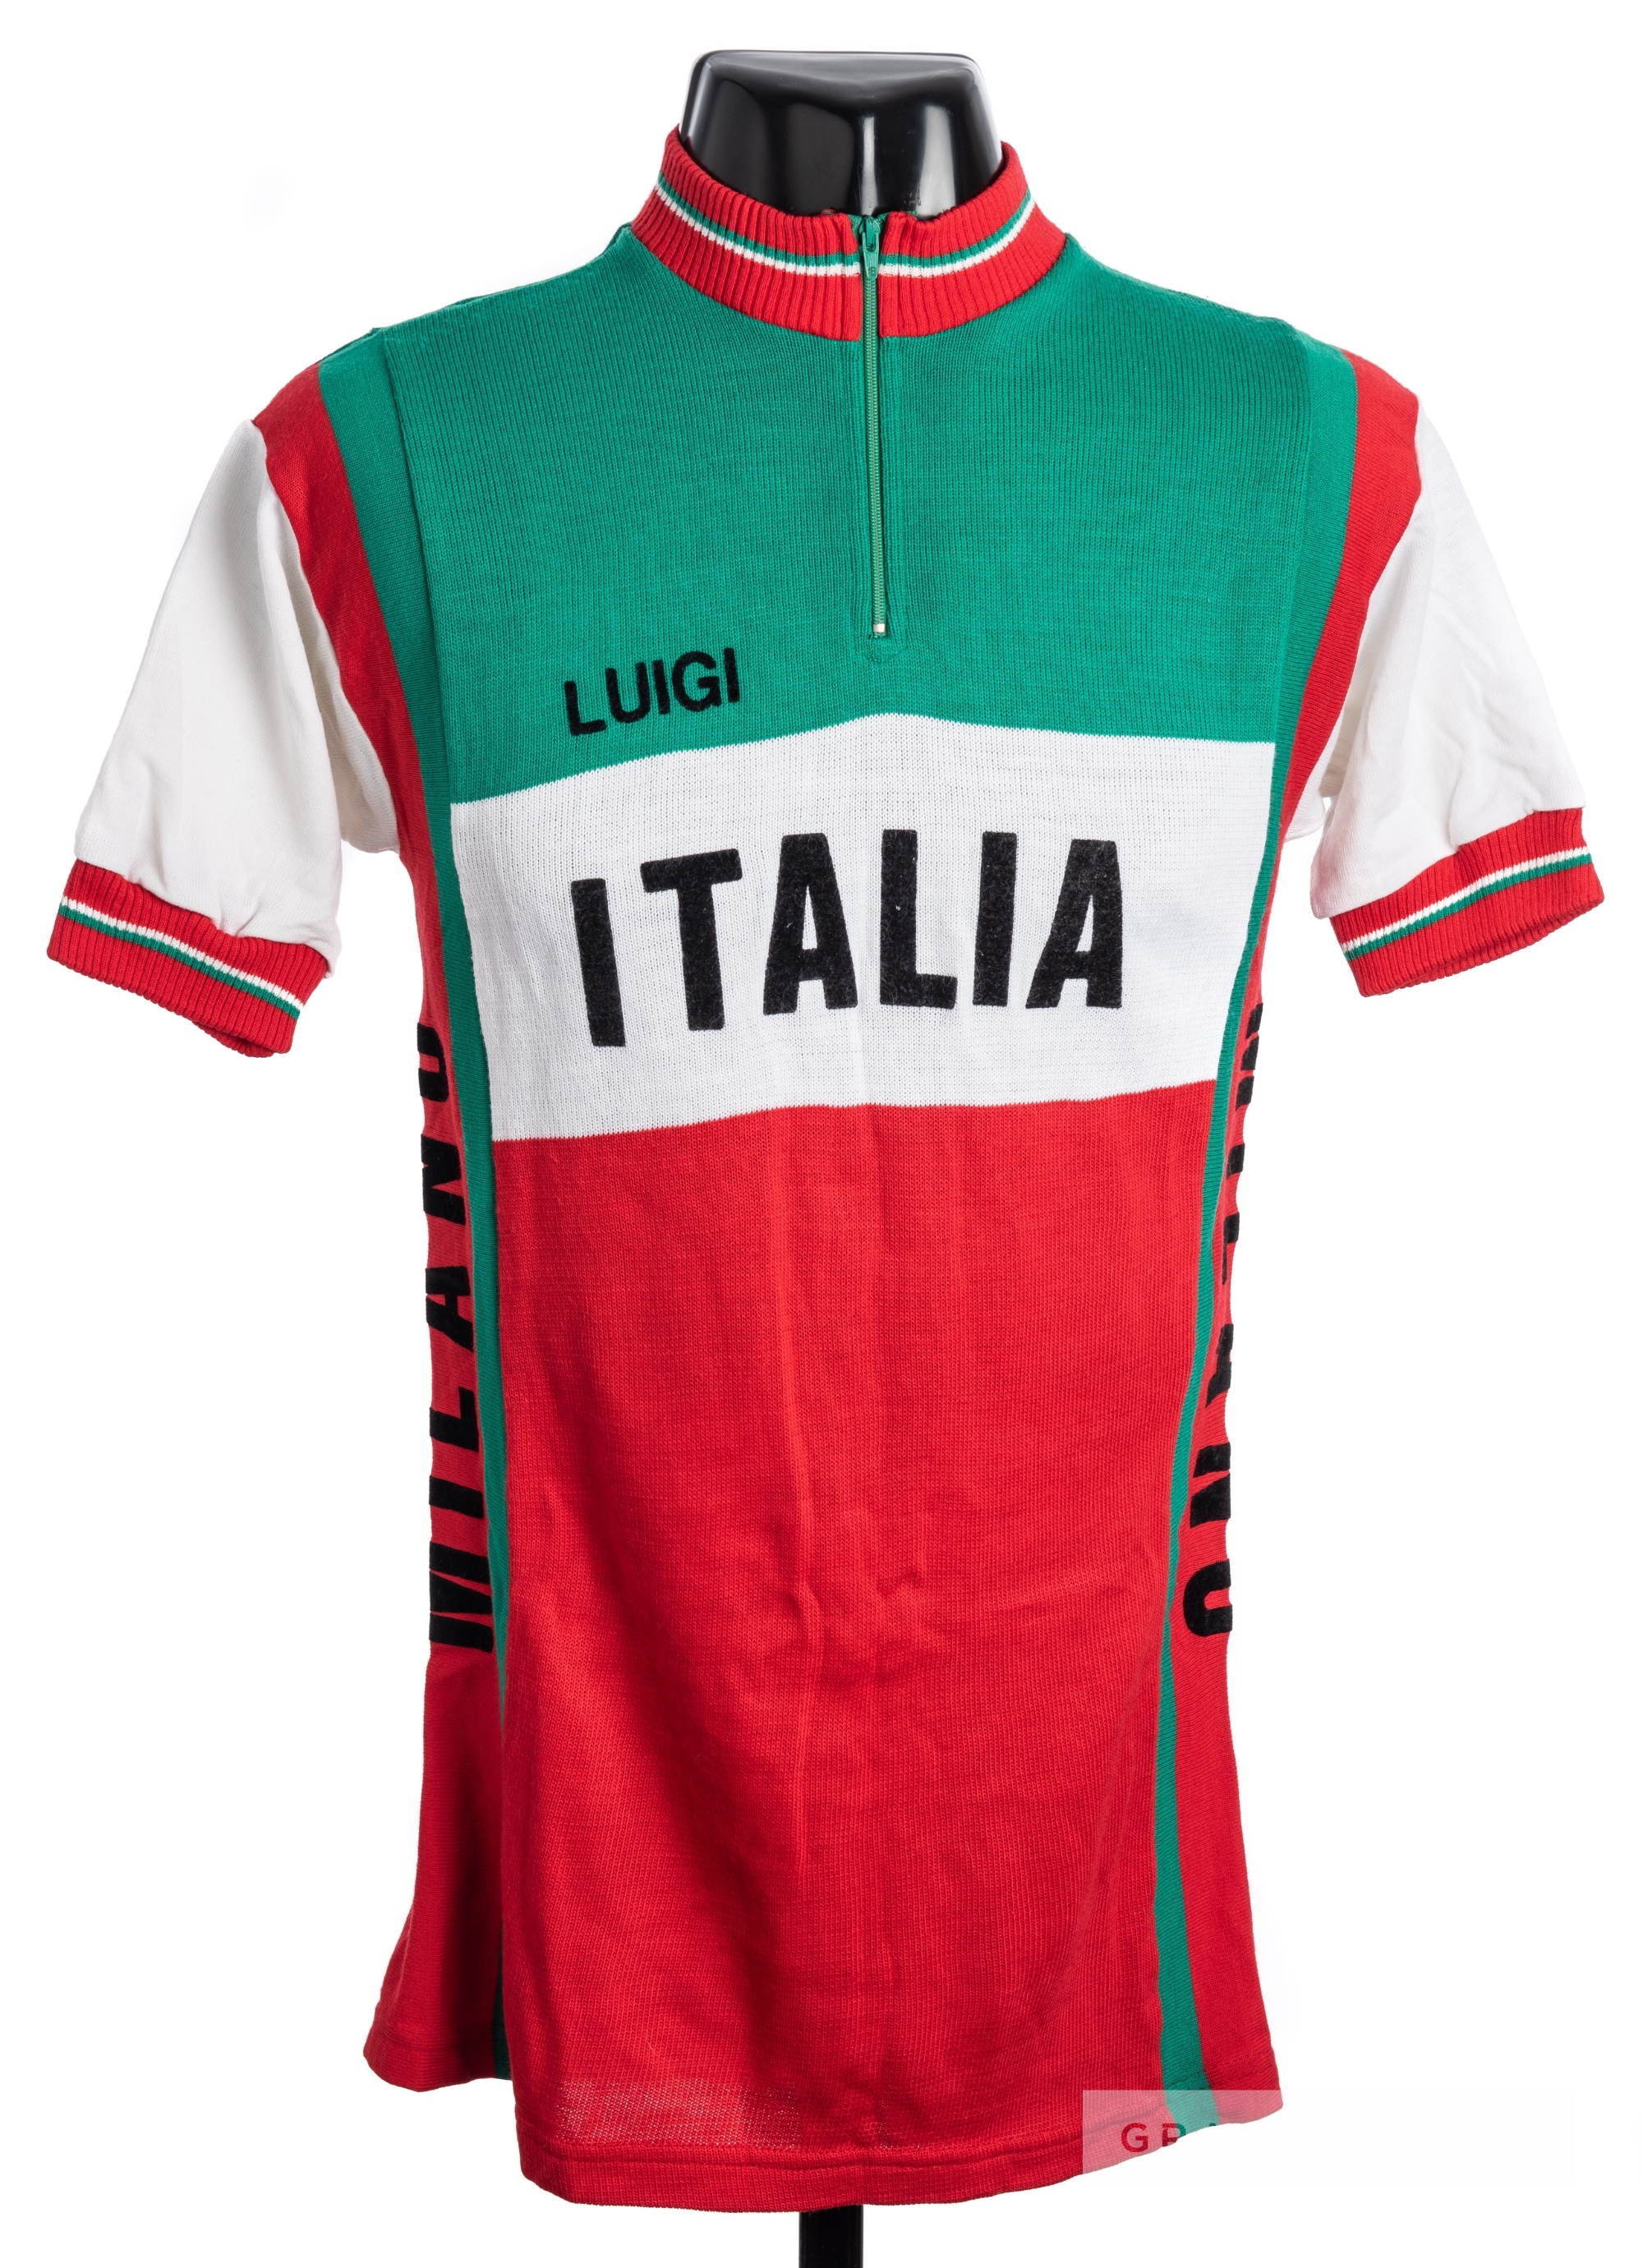 1969 green, white and red vintage Italia Pink Soda Cycling race jersey, scarce, wool short-sleeved - Image 3 of 4